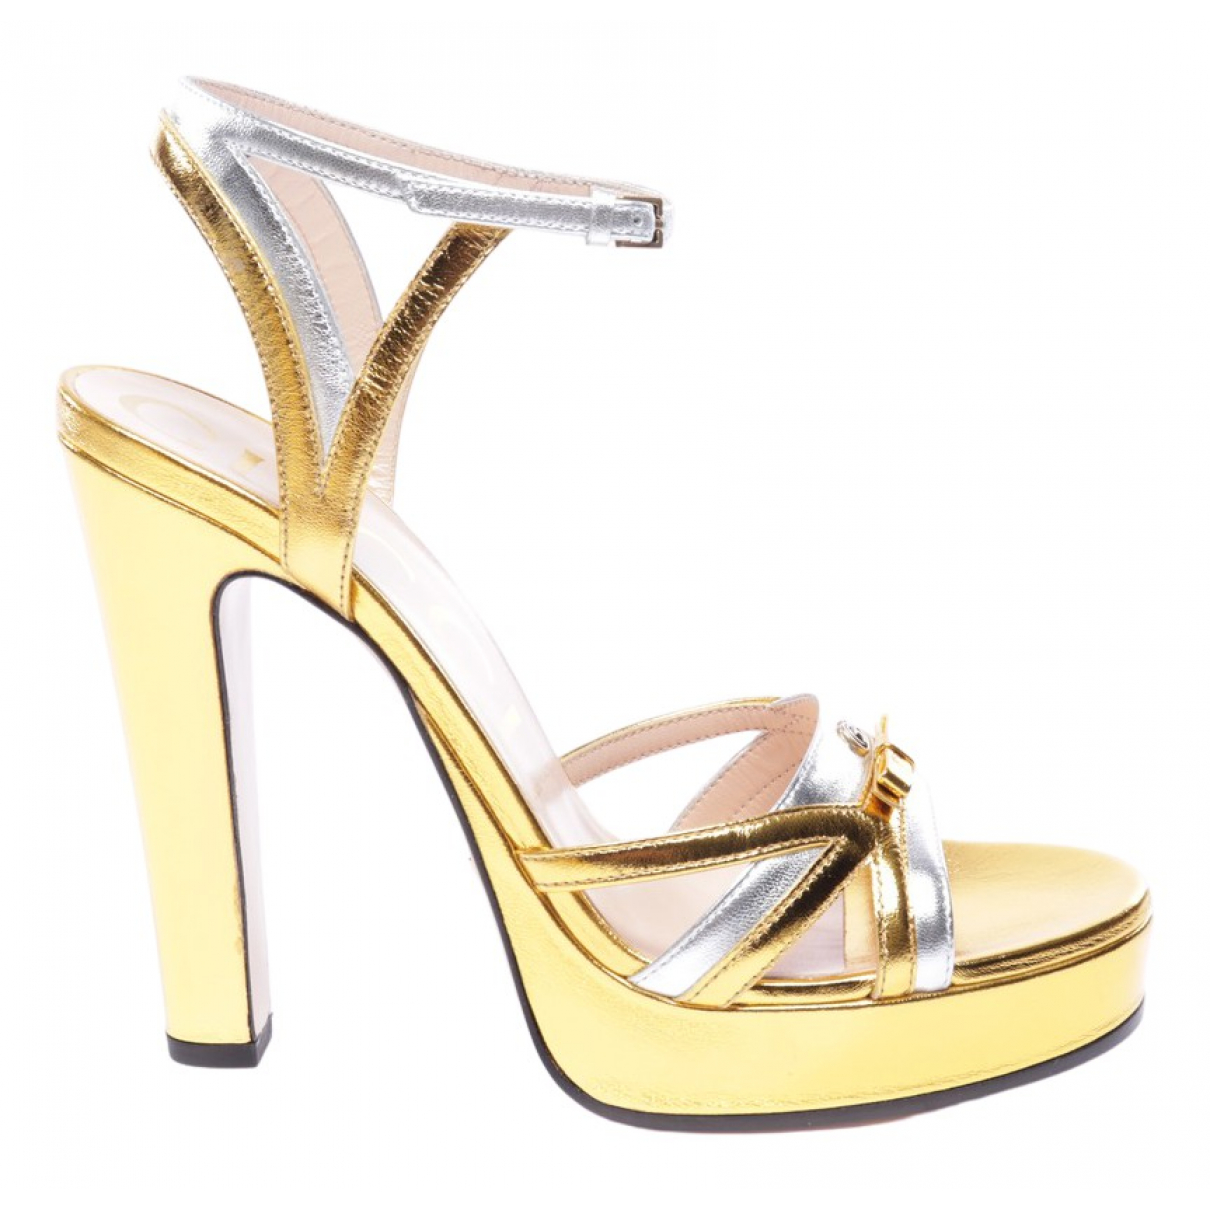 Gucci \N Metallic Patent leather Sandals for Women 38 EU